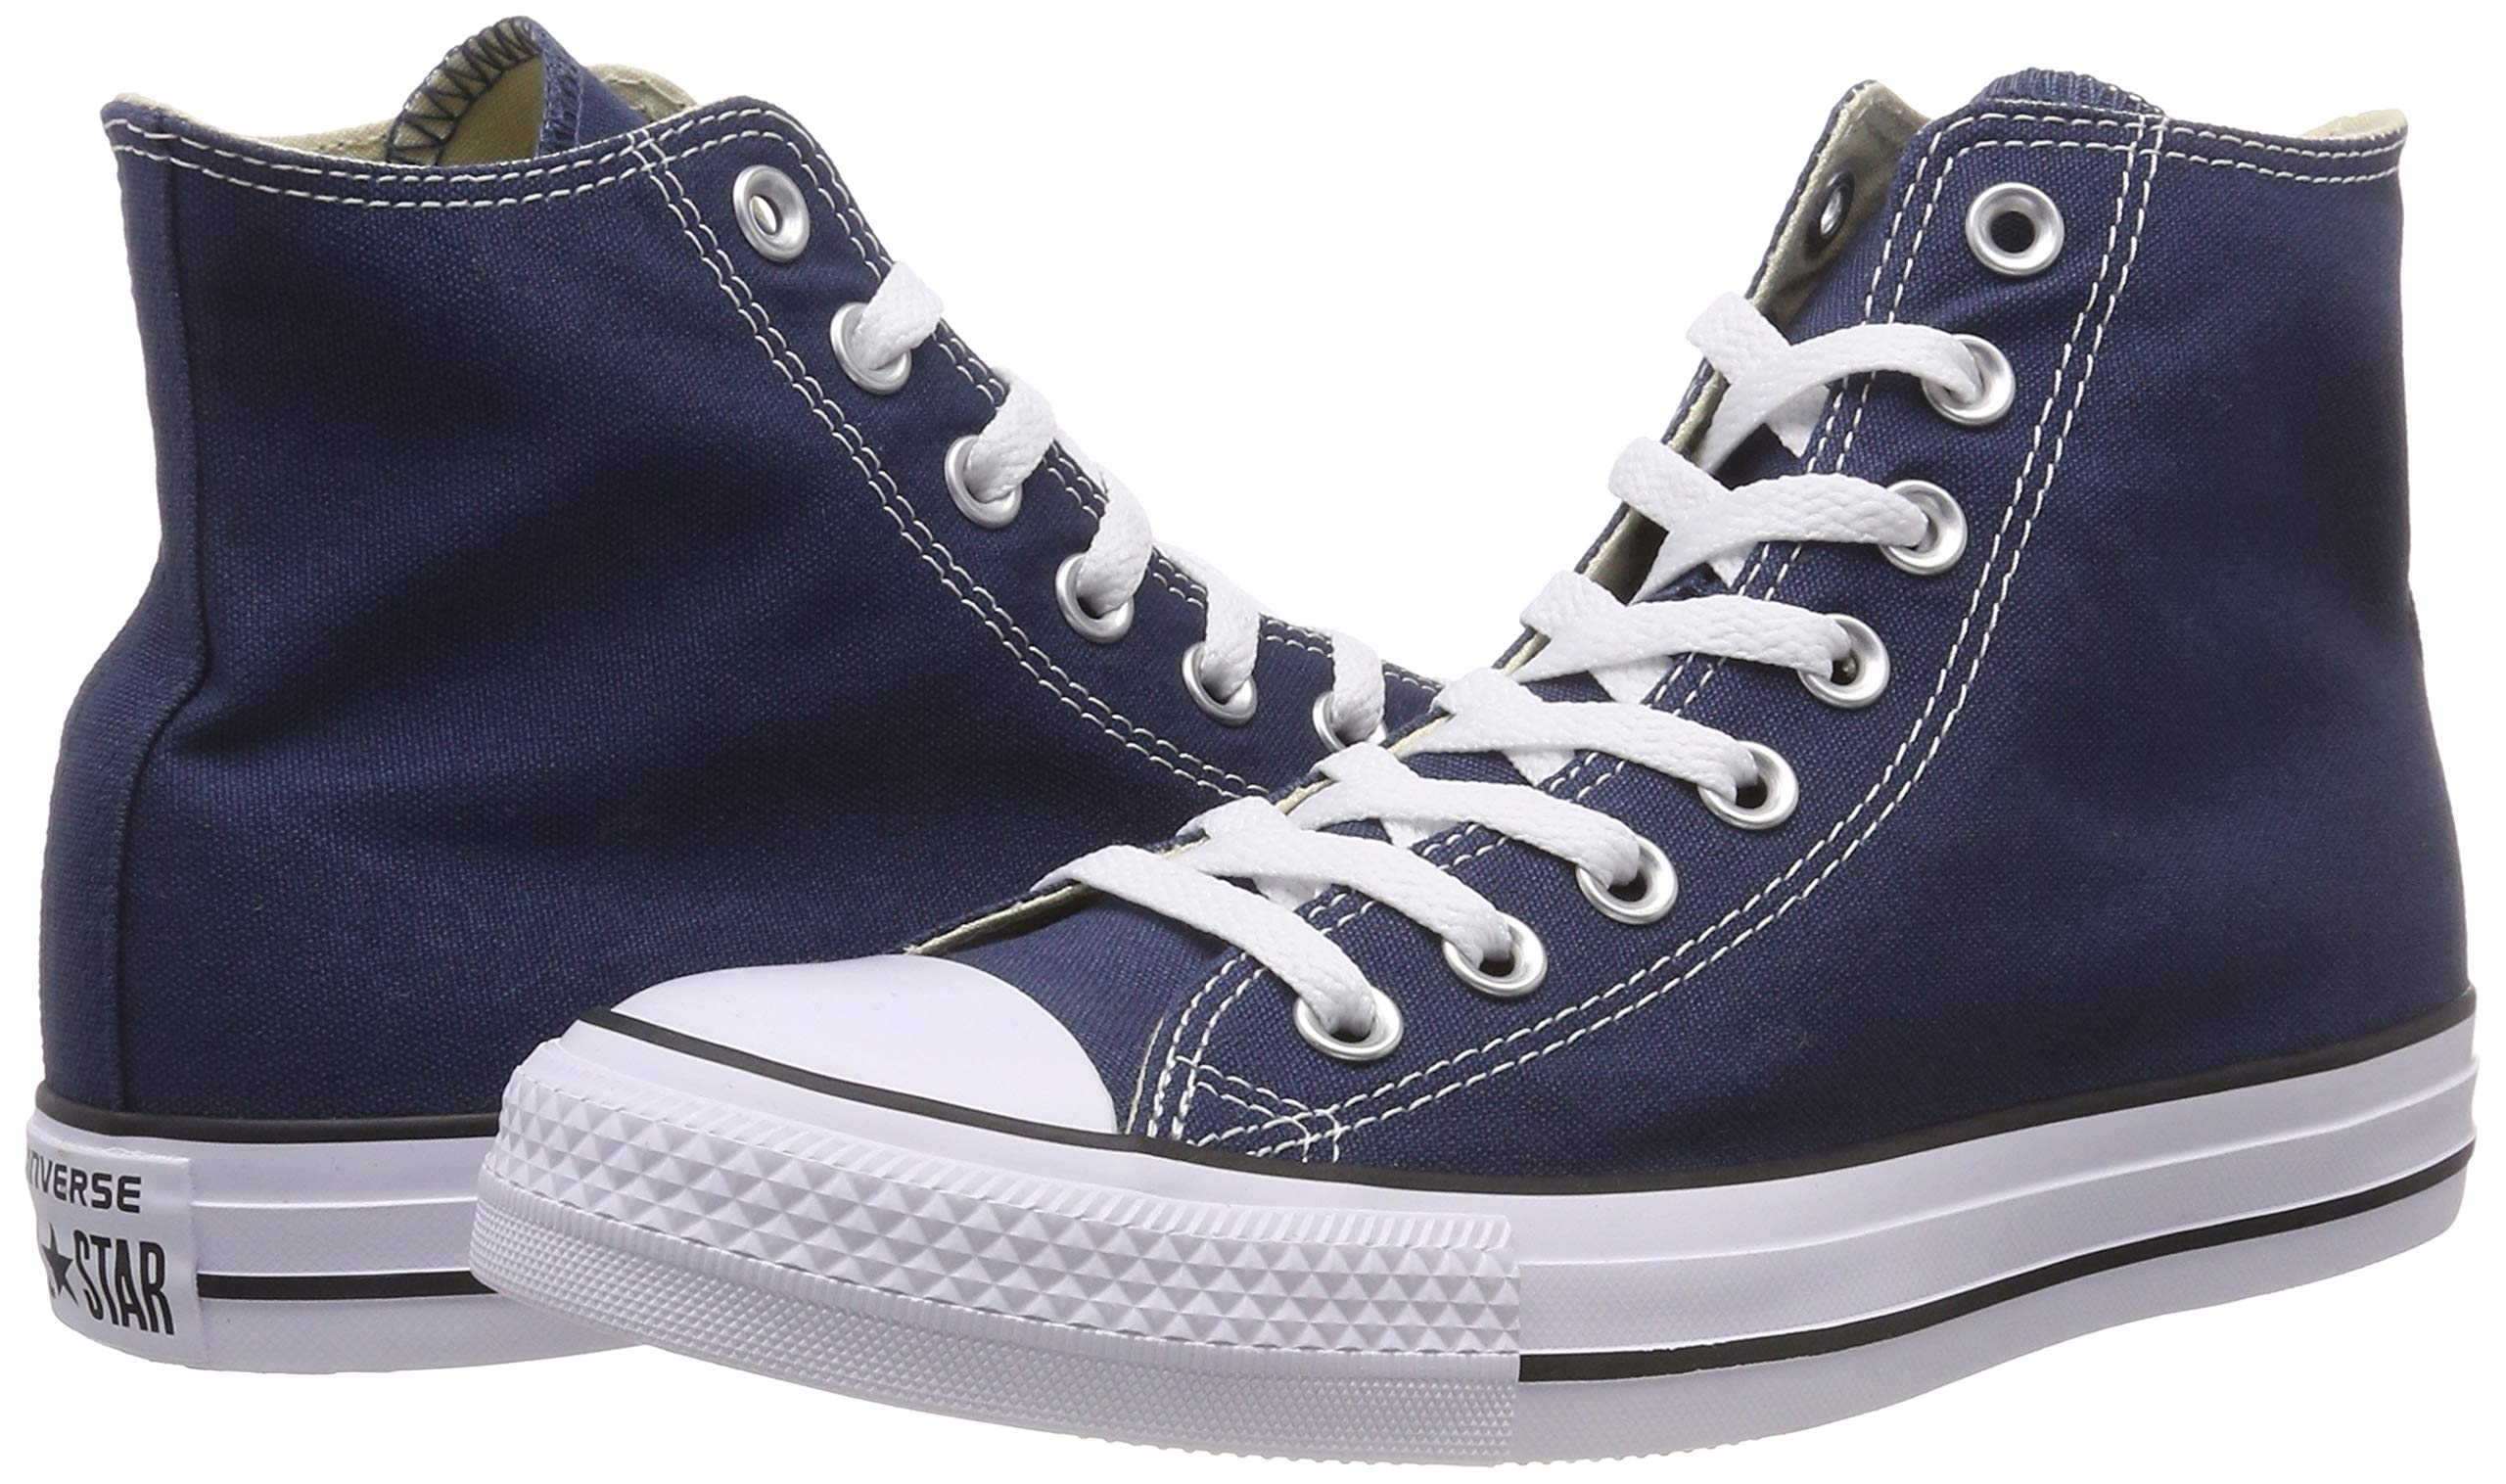 7ac1a5af0c8b5c Converse Chuck Taylor All Star High Top - M3310   Shoes   Clothing ...